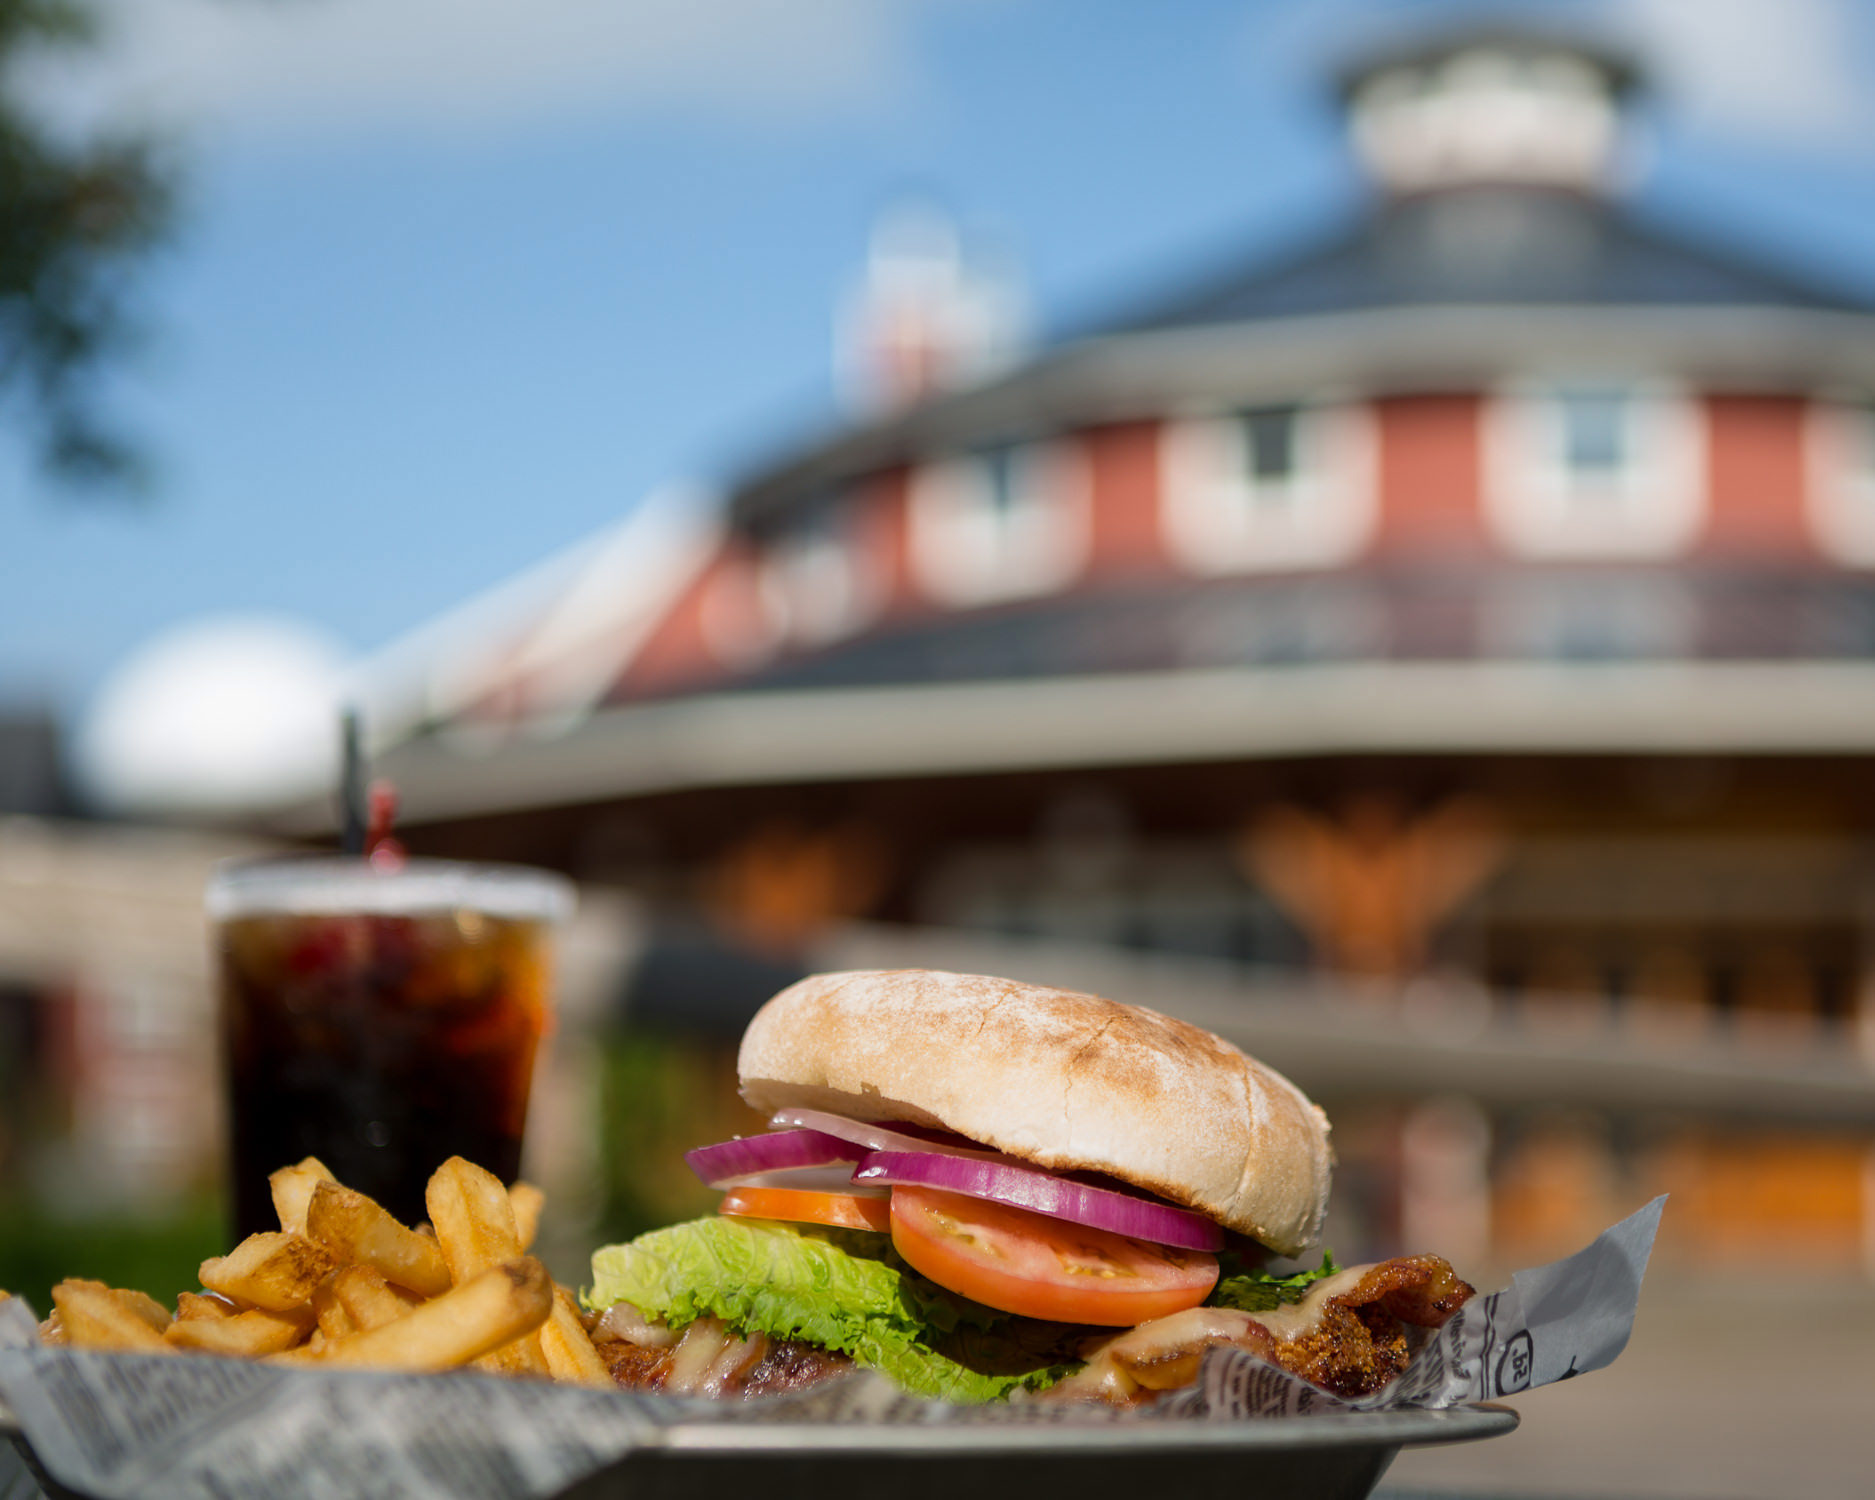 A burger and a basket of fries are seen on a patio table with the Timbers Restaurant in the background in a food photo by Stina Booth